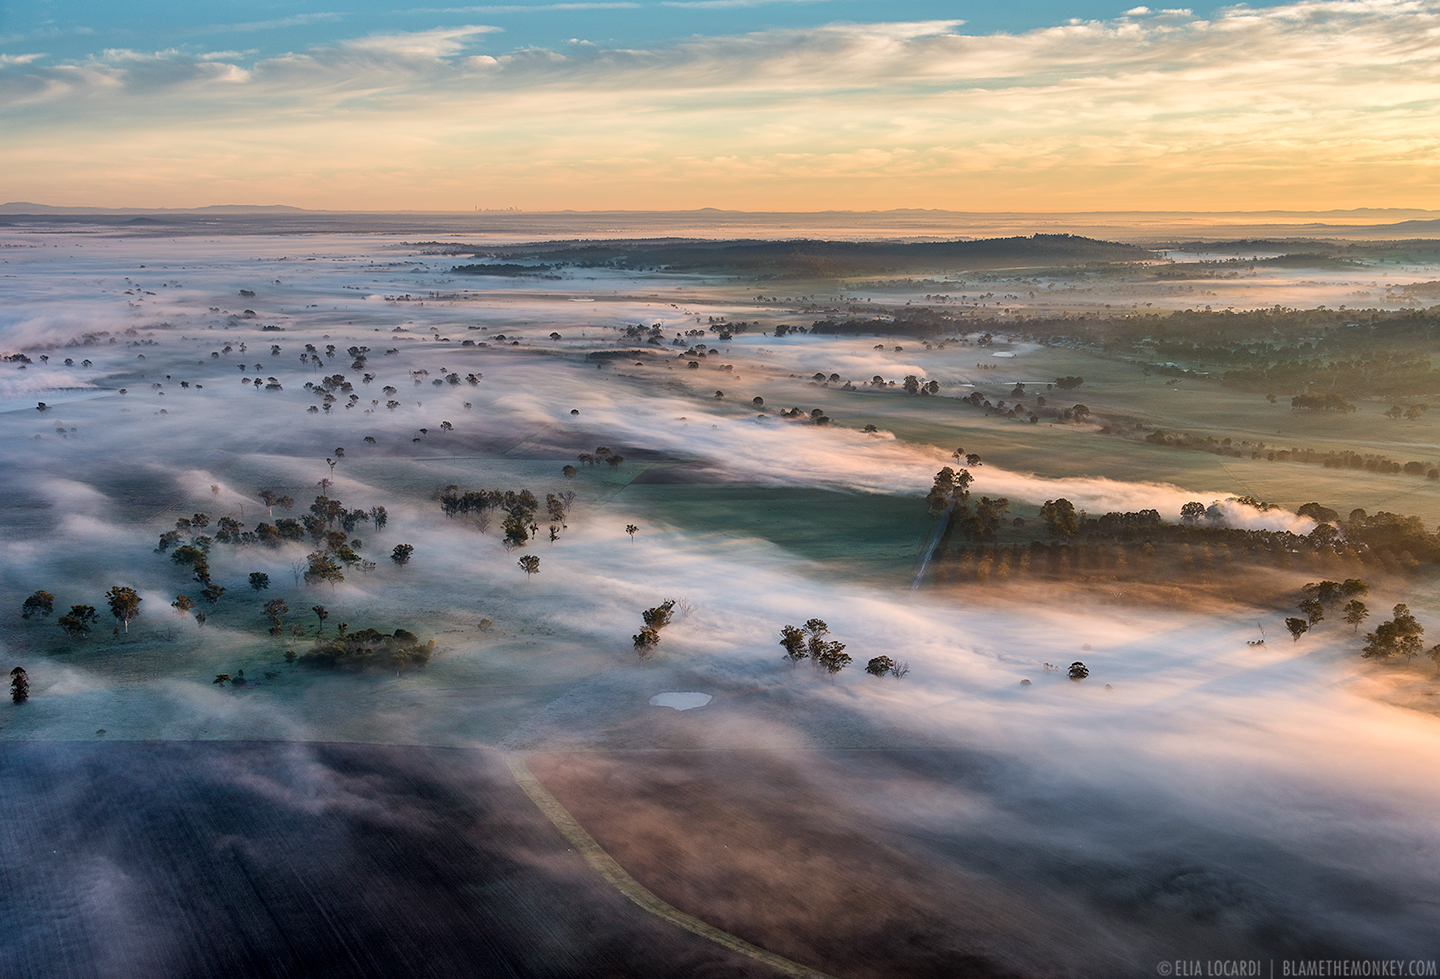 Queensland Scenic Rim from hot air balloon